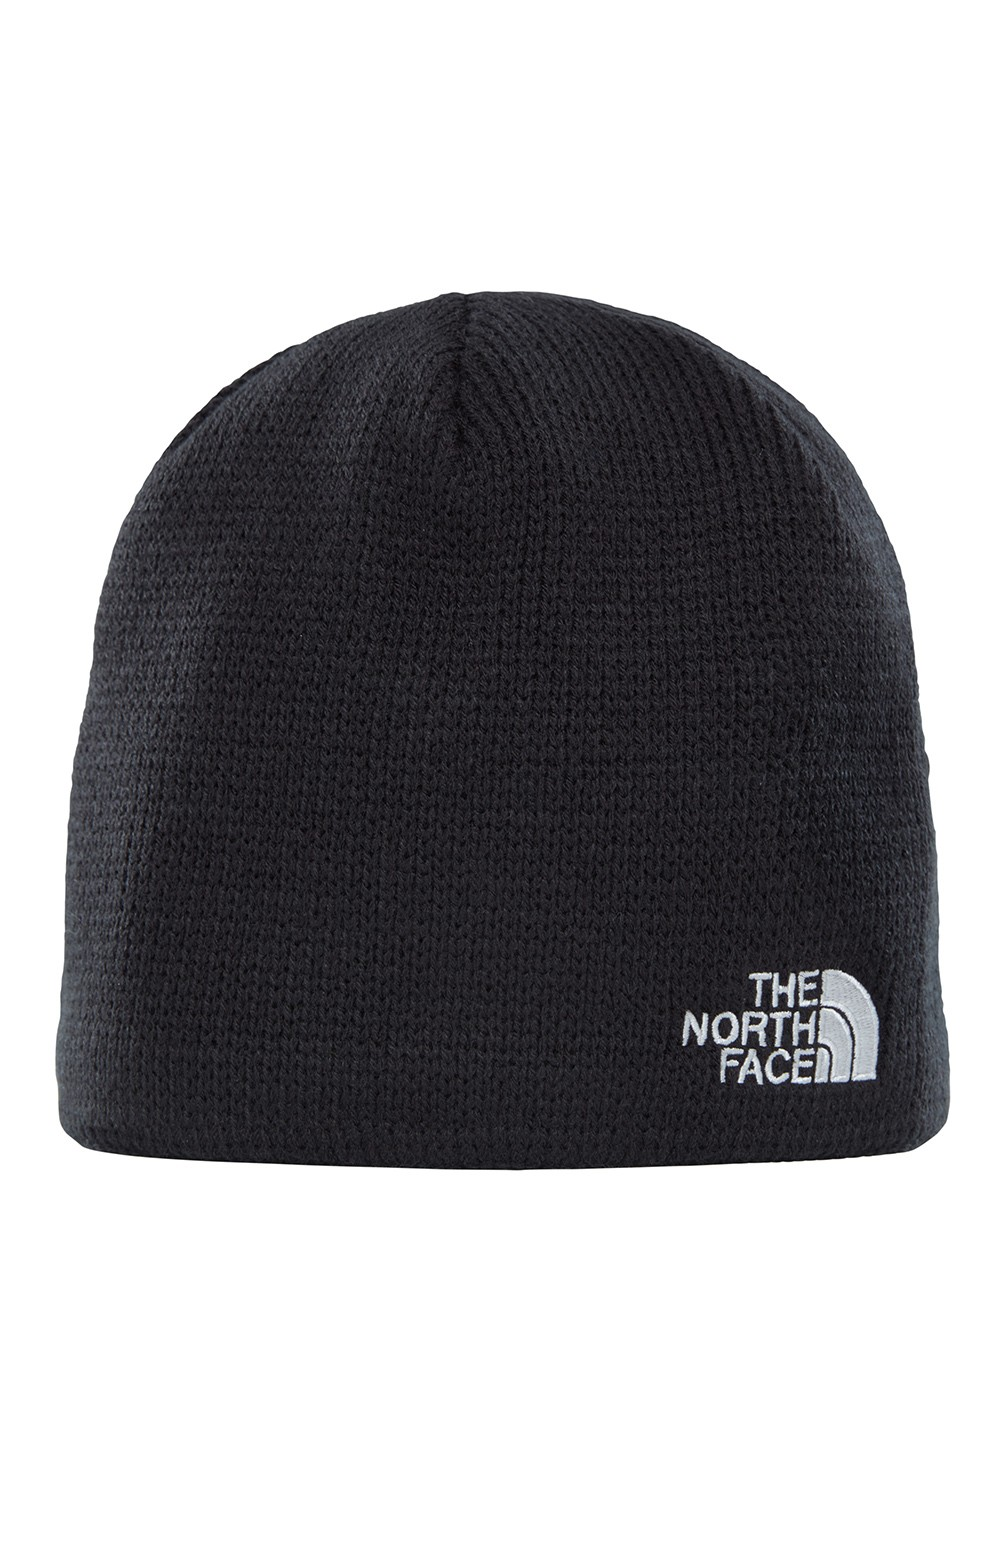 a3bc5f6f6ce The North Face Bones Beanie - House of Bruar